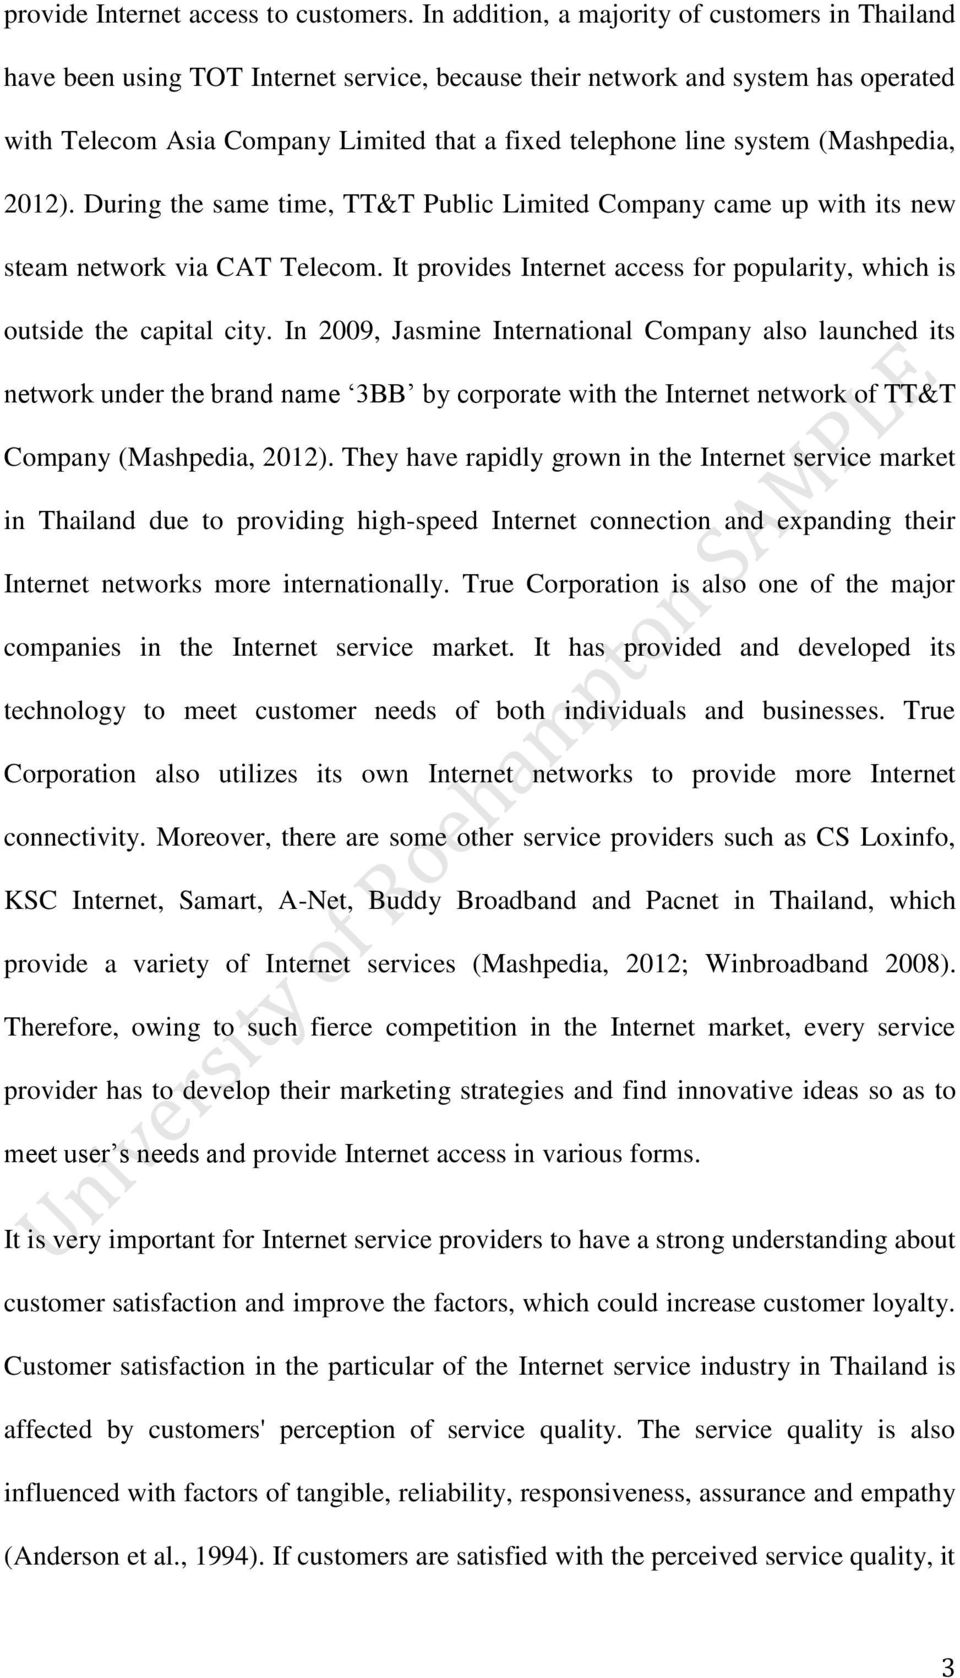 system (Mashpedia, 2012). During the same time, TT&T Public Limited Company came up with its new steam network via CAT Telecom.